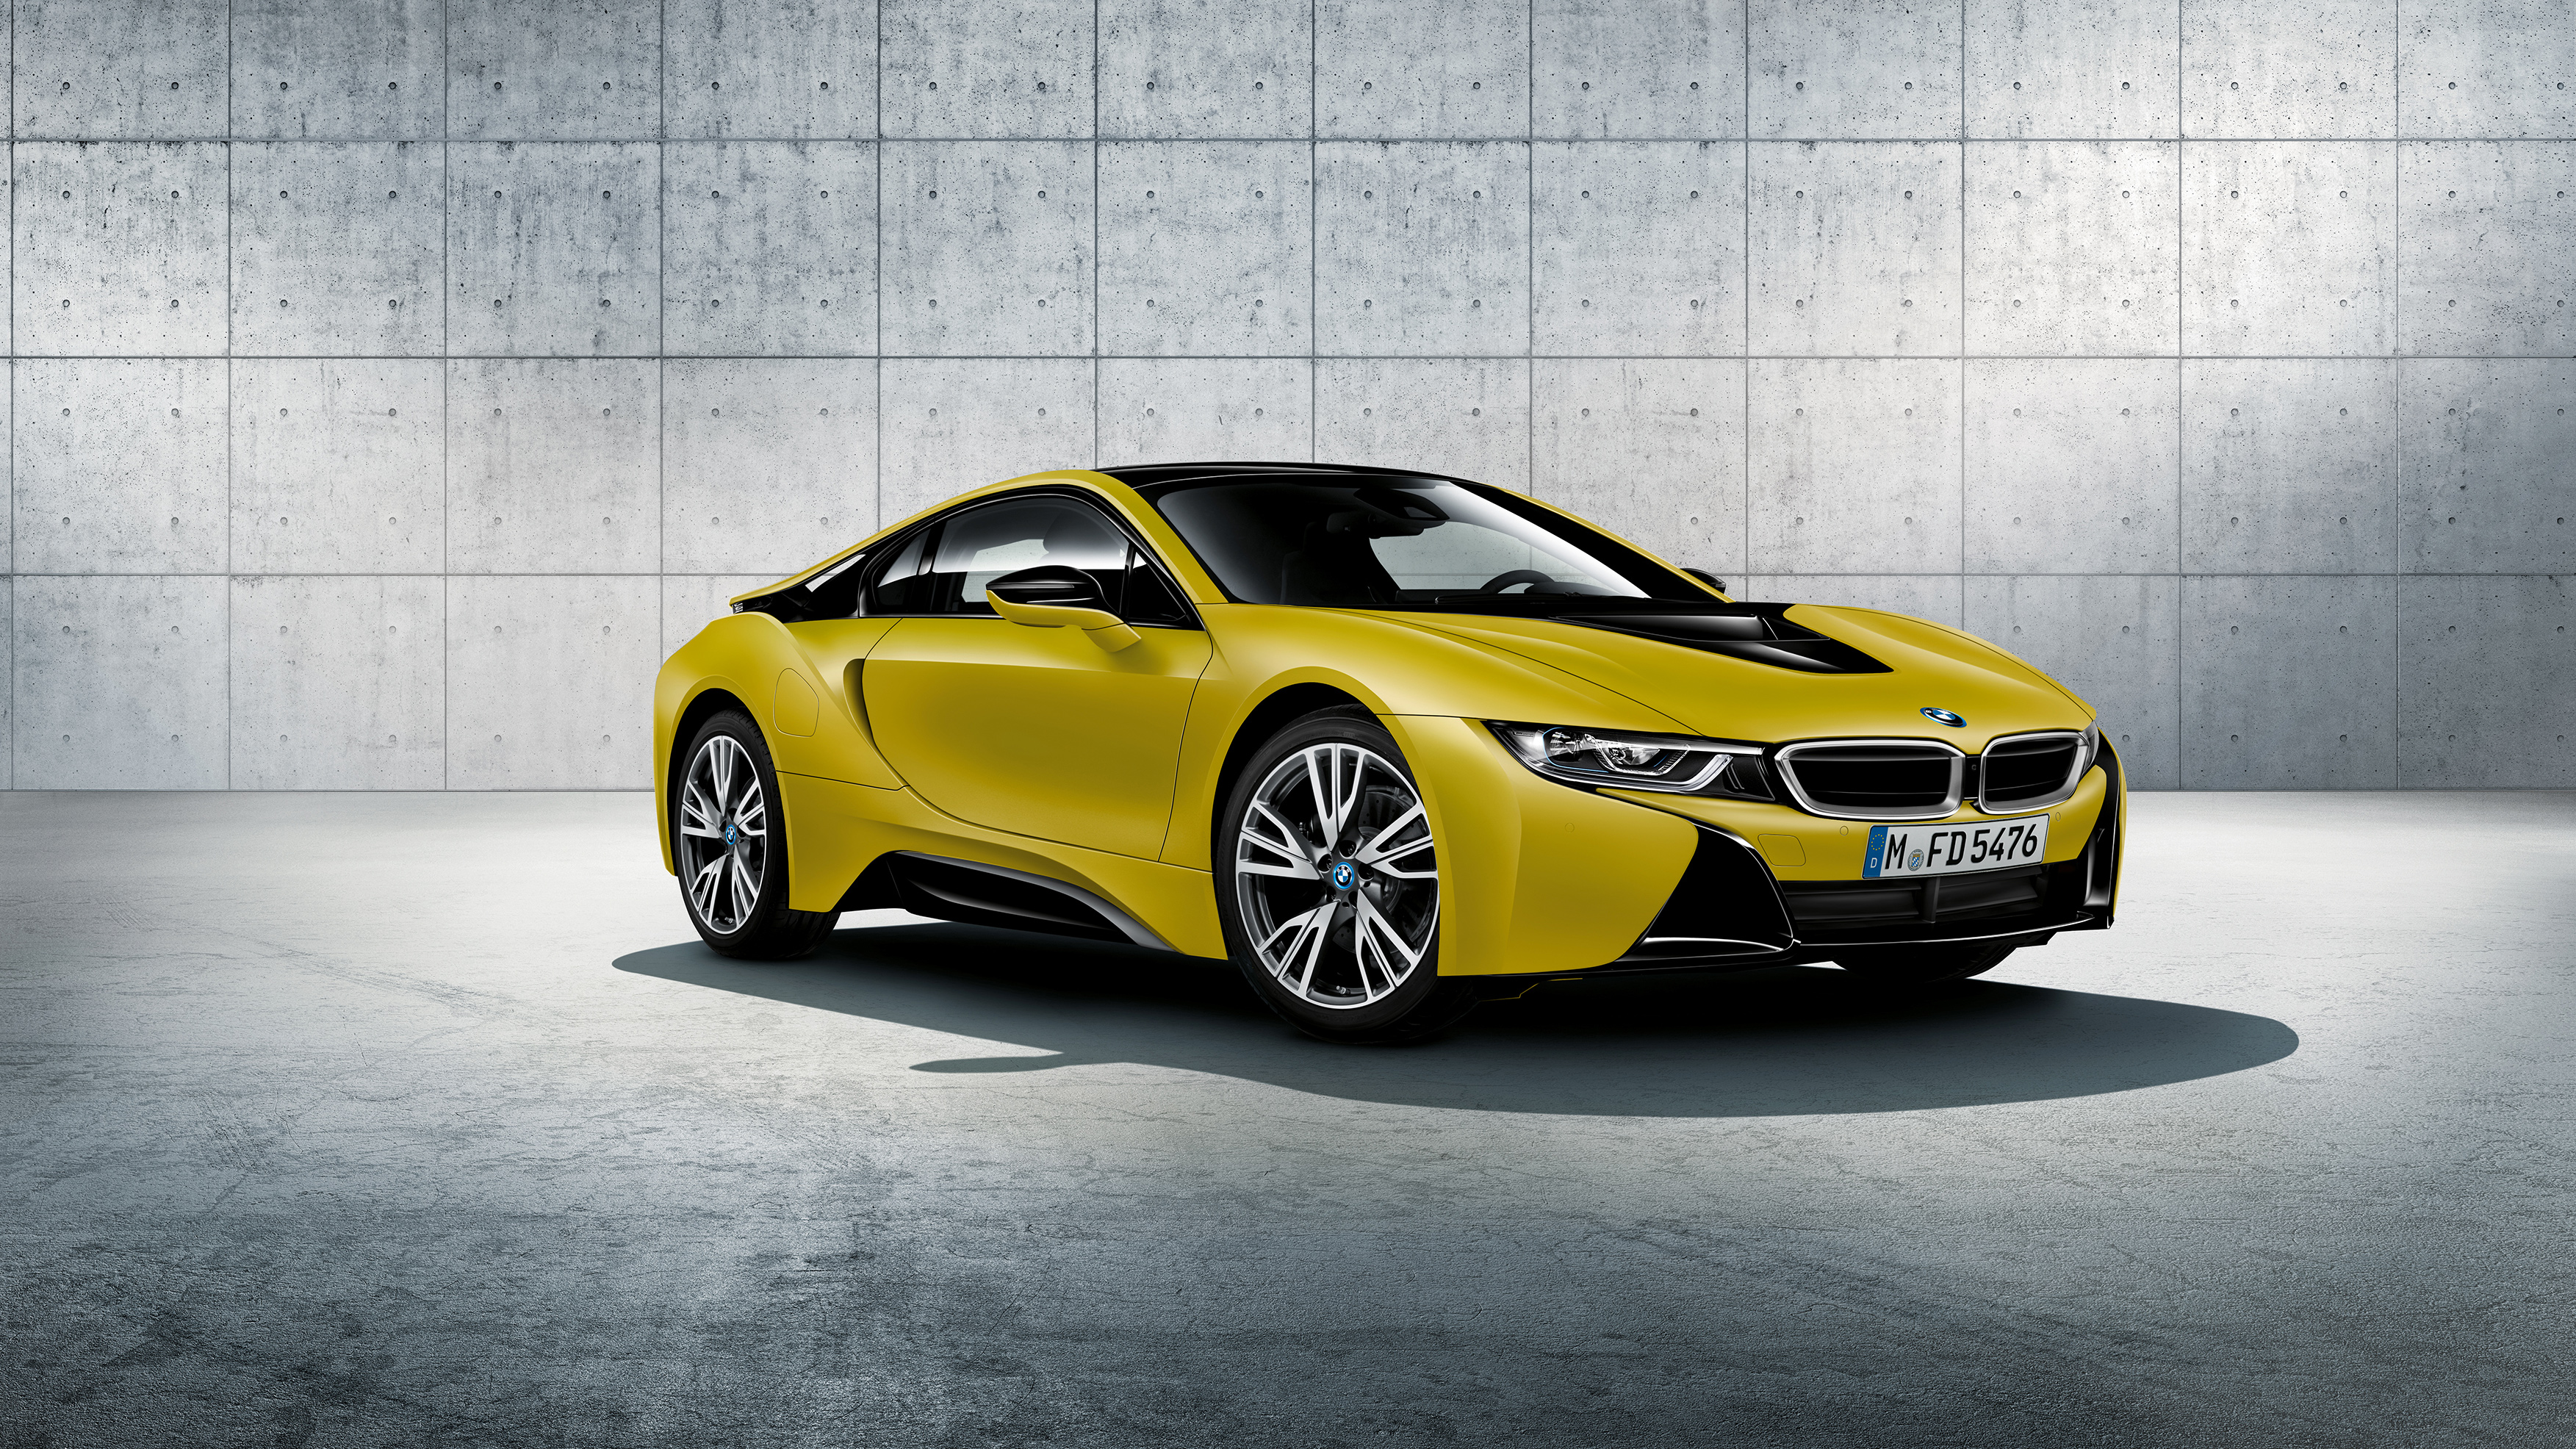 2017 BMW i8 Frozen Yellow Edition 2 Wallpaper | HD Car ...